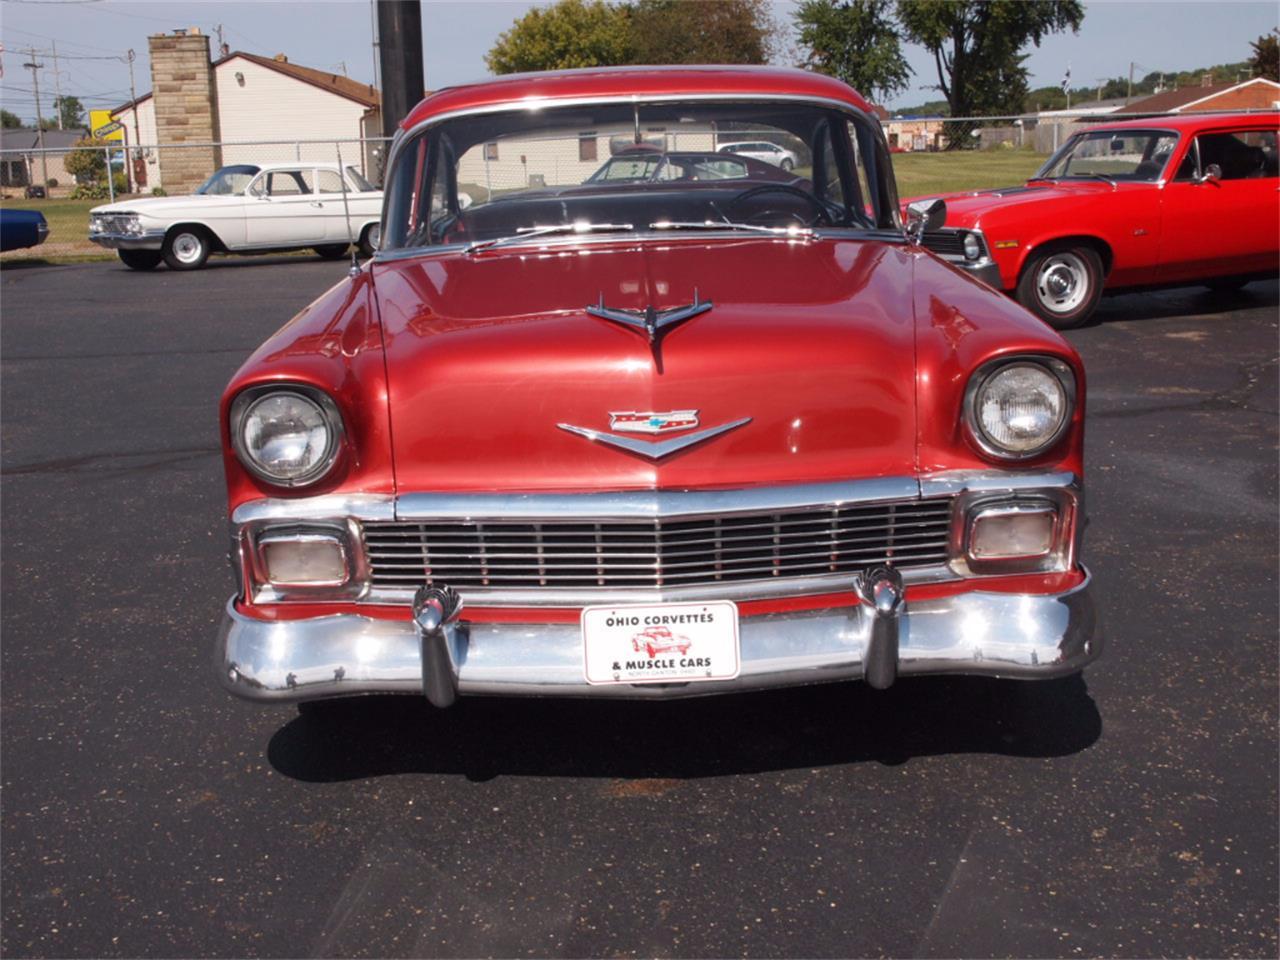 Large Picture of Classic '56 Bel Air located in North Canton Ohio - $37,000.00 Offered by Ohio Corvettes and Muscle Cars - LVL5